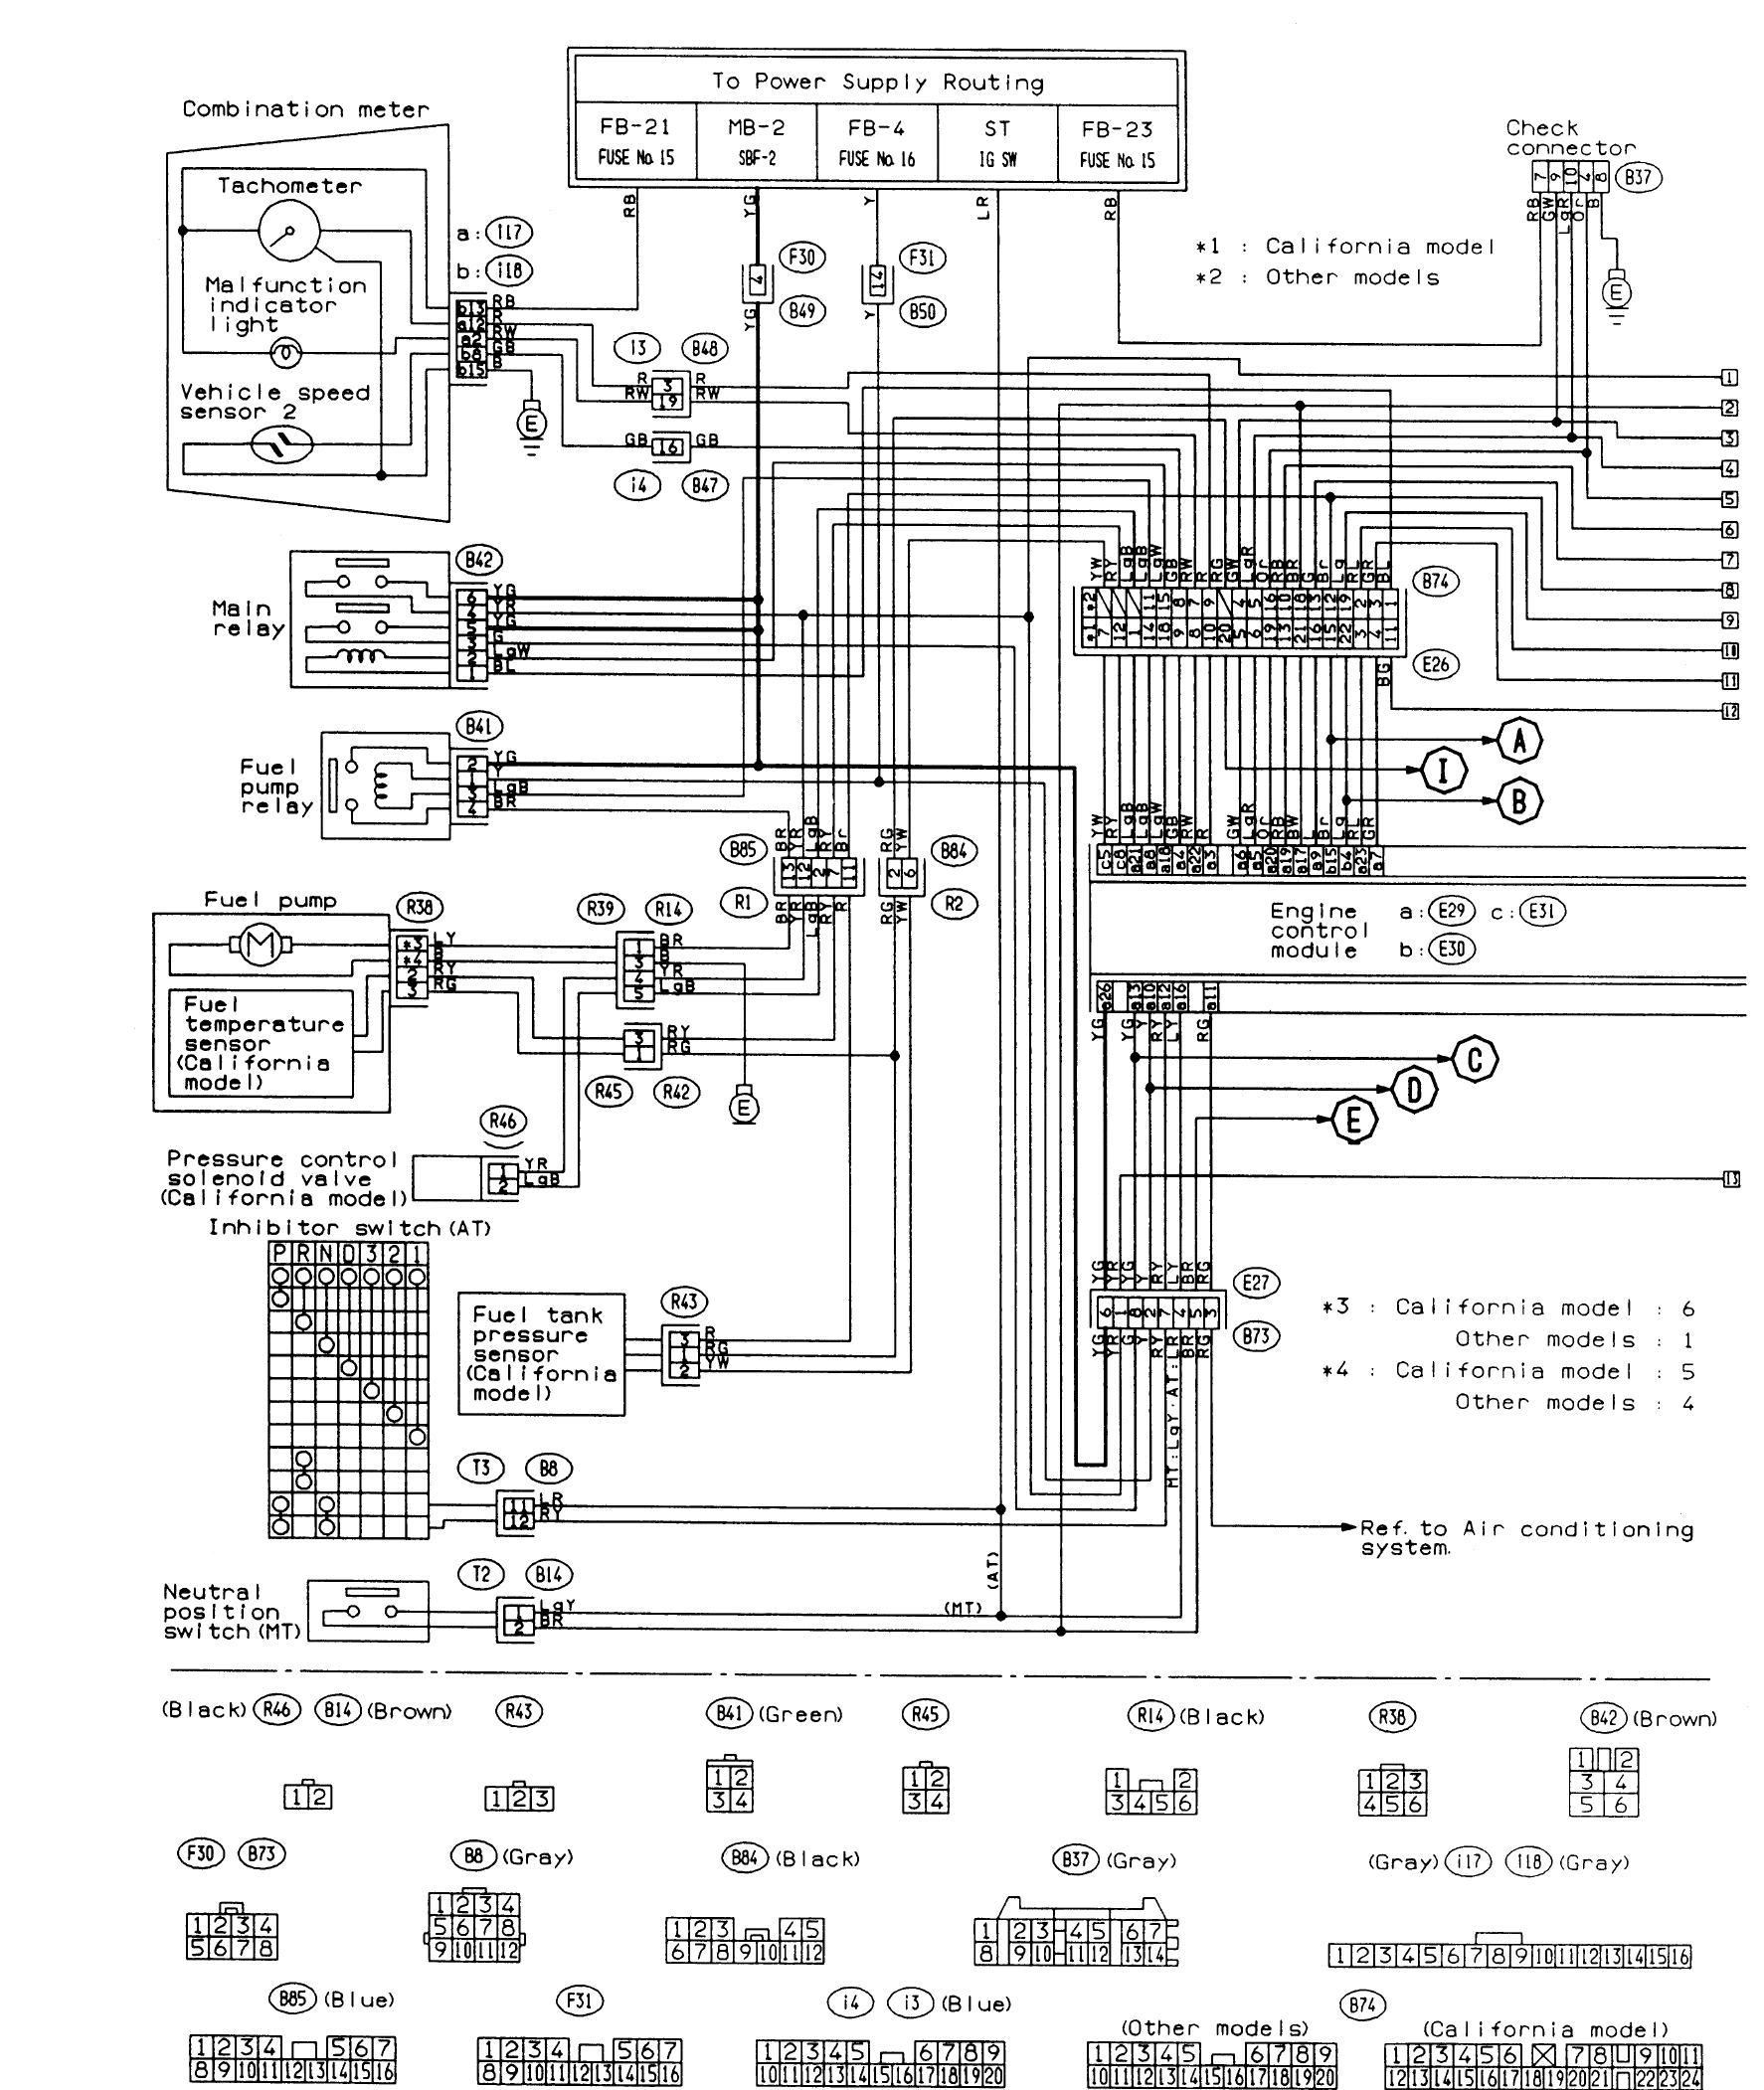 subaru ecu wiring diagram FUSlrCX 1995 impreza wiring diagram on 1995 download wirning diagrams 1998 Subaru Legacy Wiring-Diagram at aneh.co